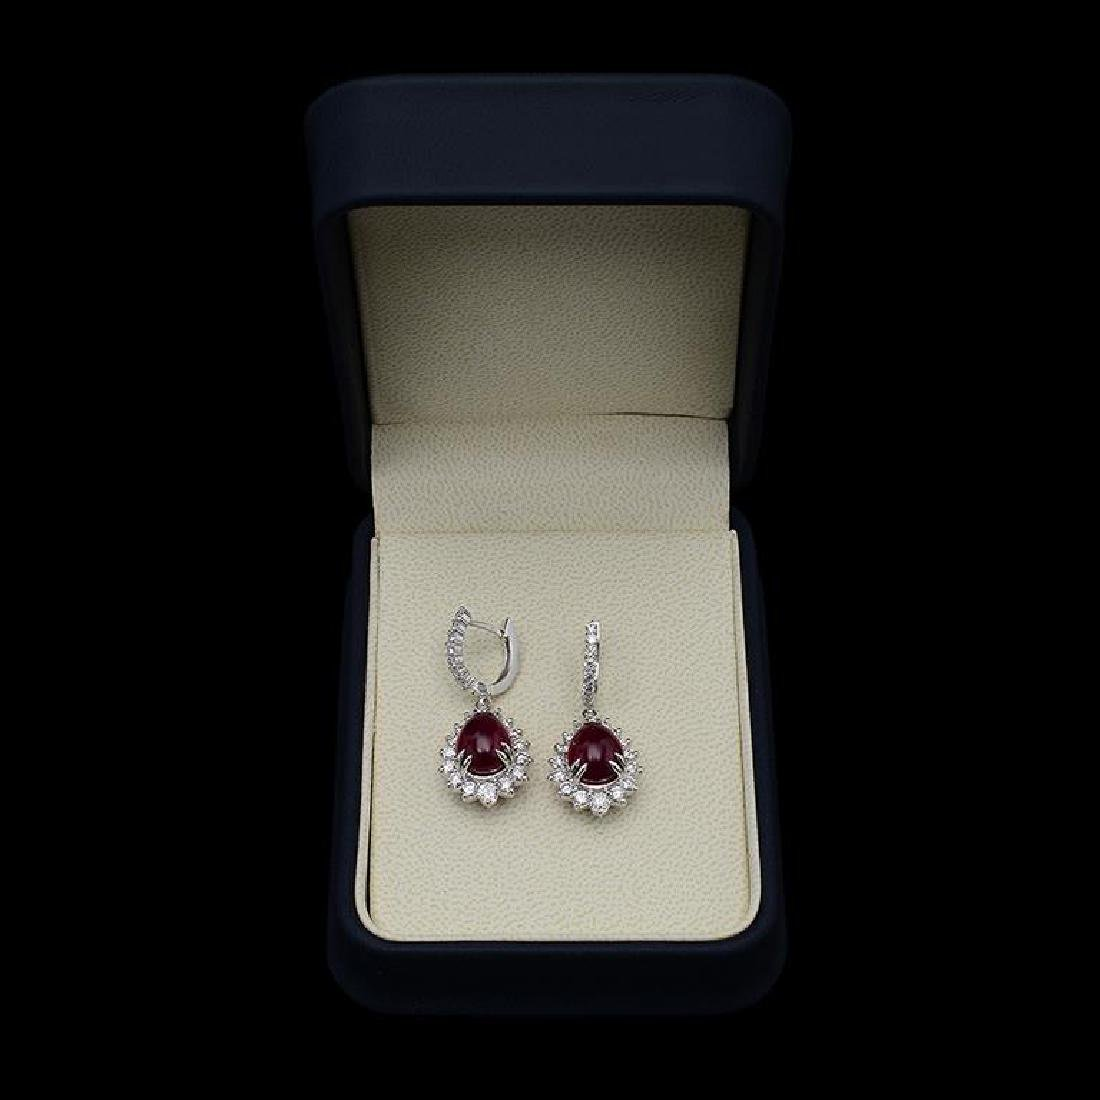 14K Gold 10.89ct Ruby 2.43ct  Diamond Earrings - 2